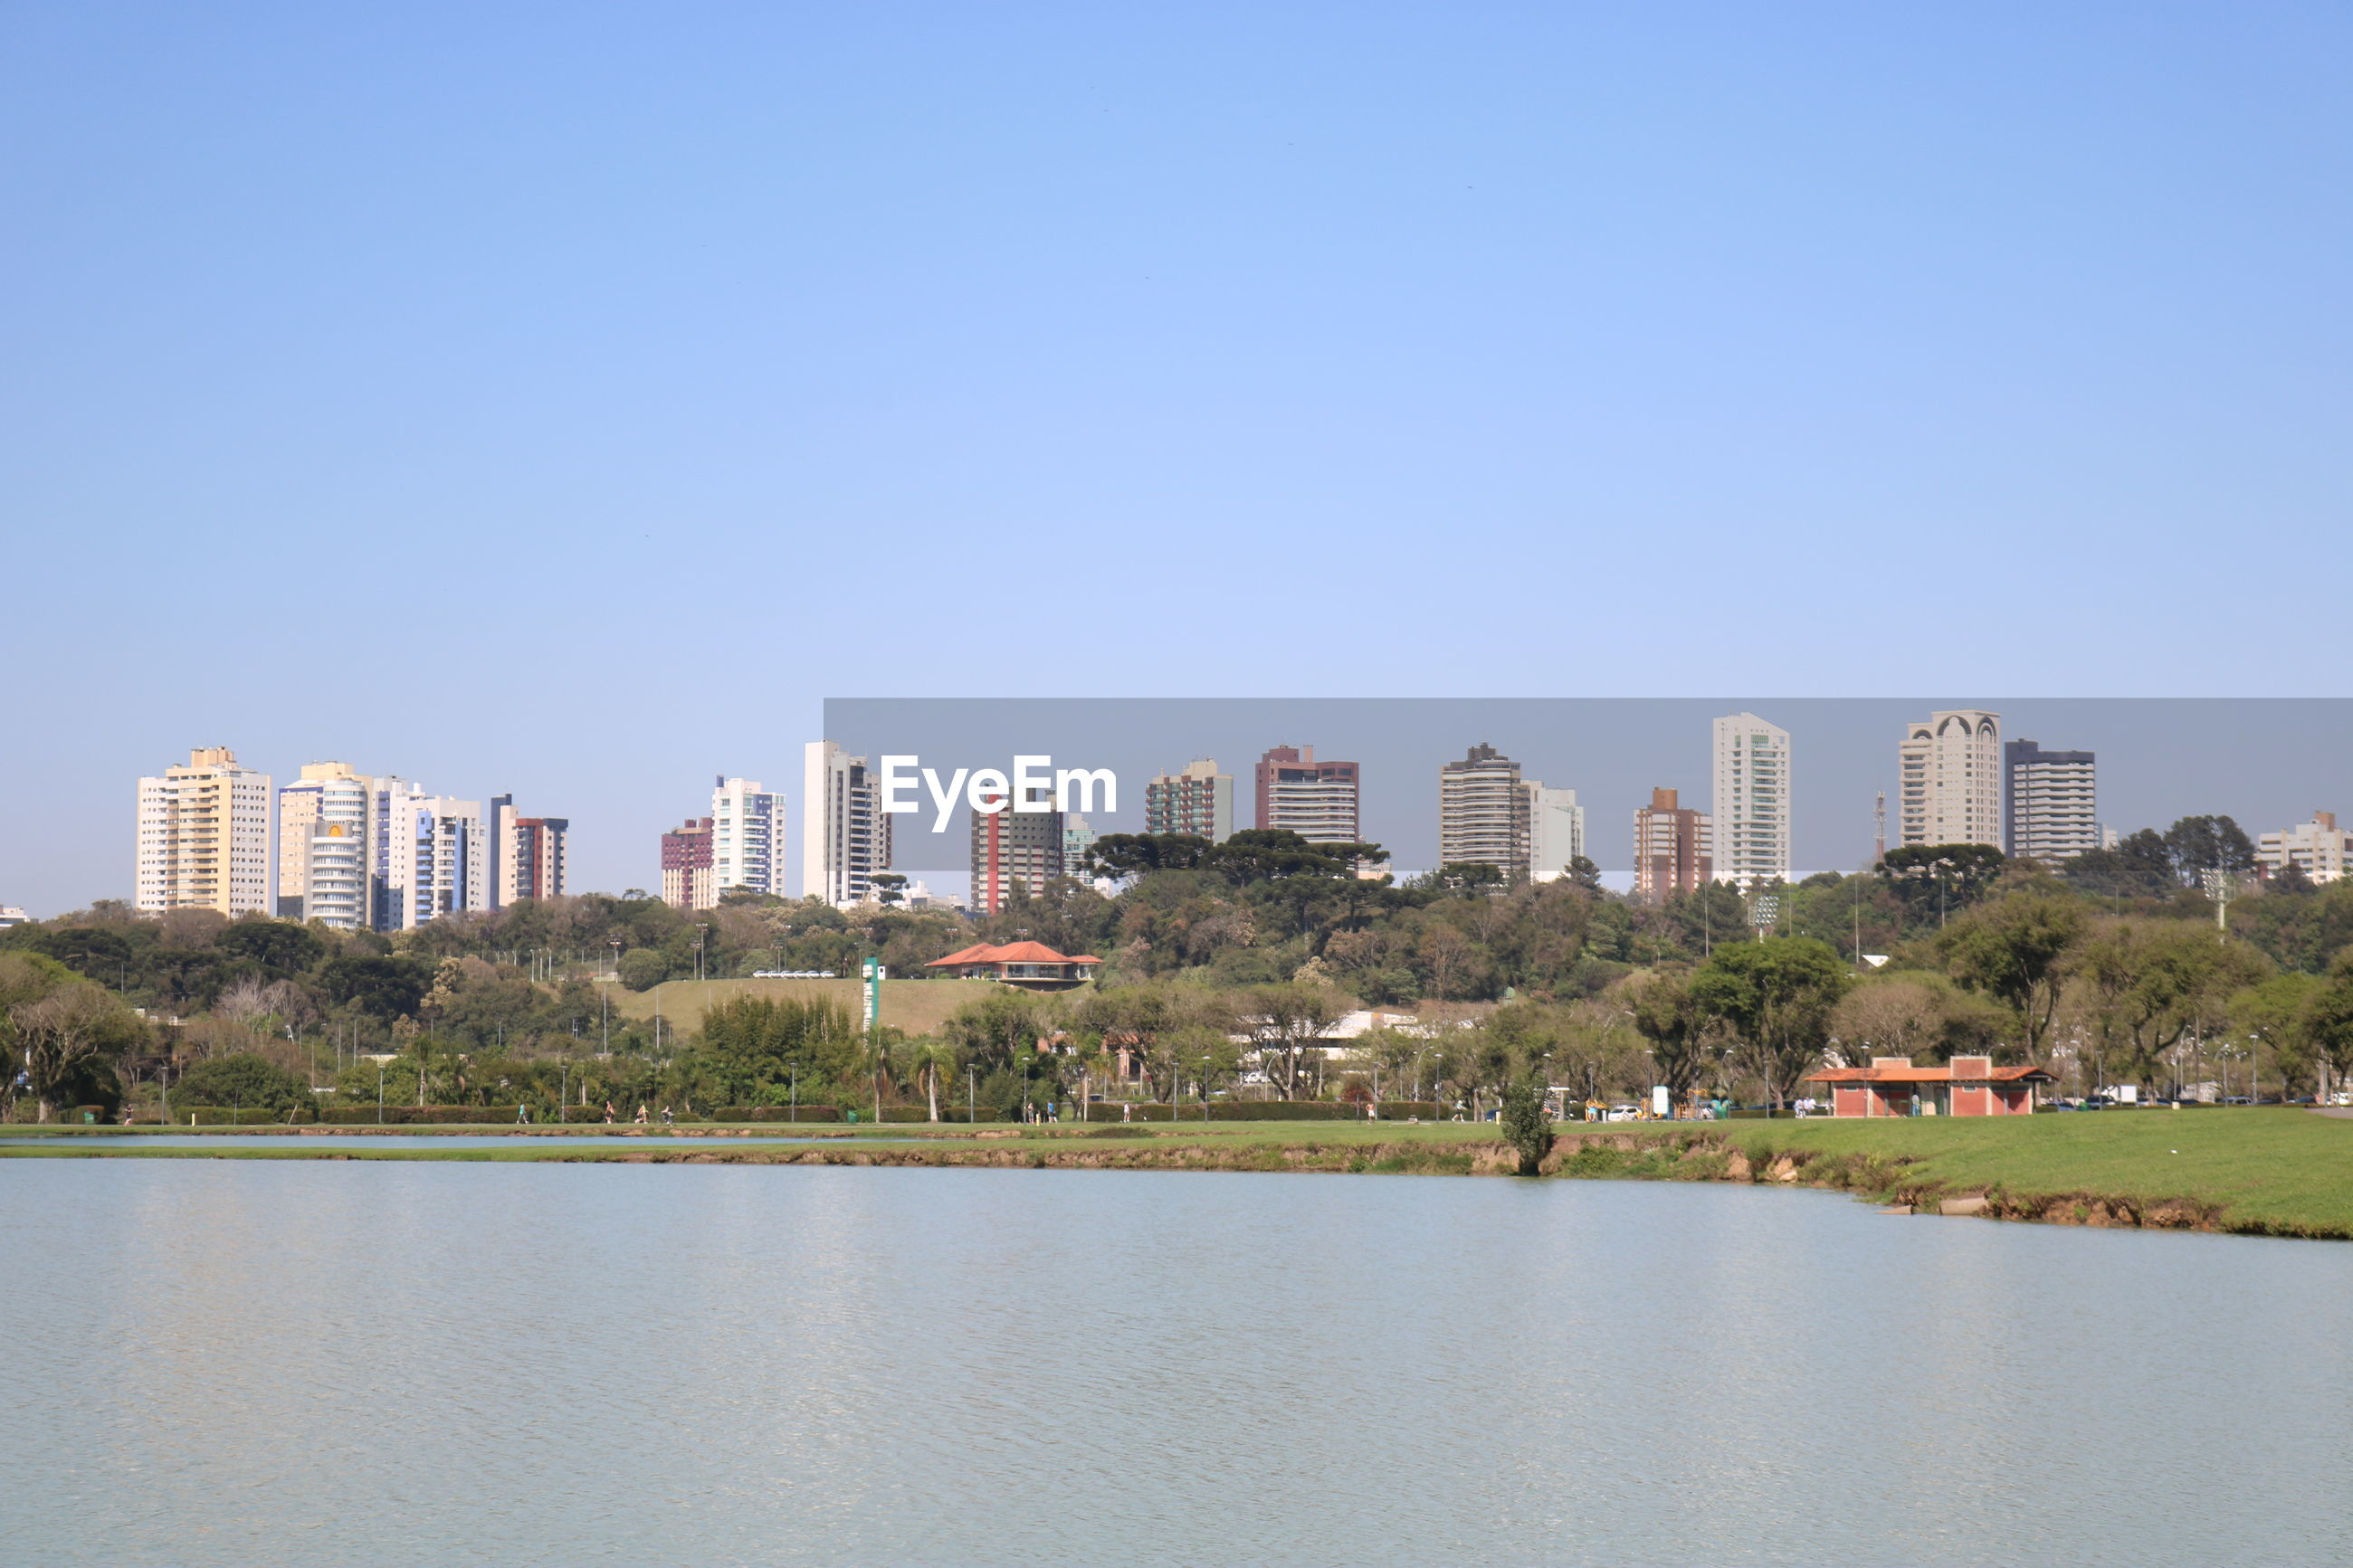 SCENIC VIEW OF BUILDINGS AGAINST CLEAR SKY